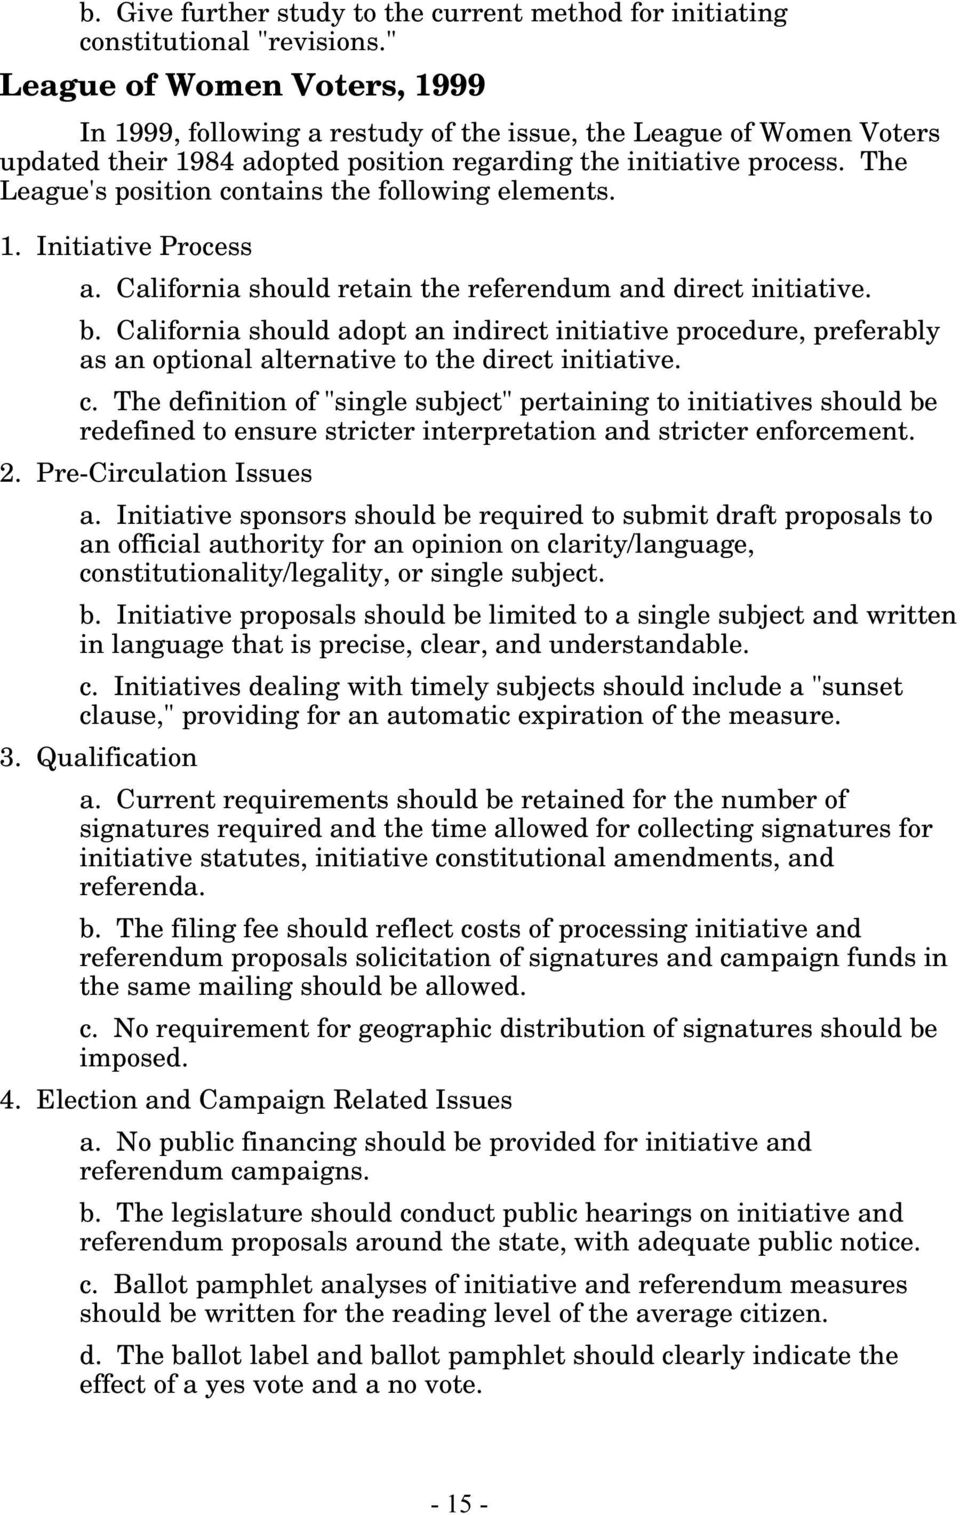 The League's position contains the following elements. 1. Initiative Process a. California should retain the referendum and direct initiative. b.